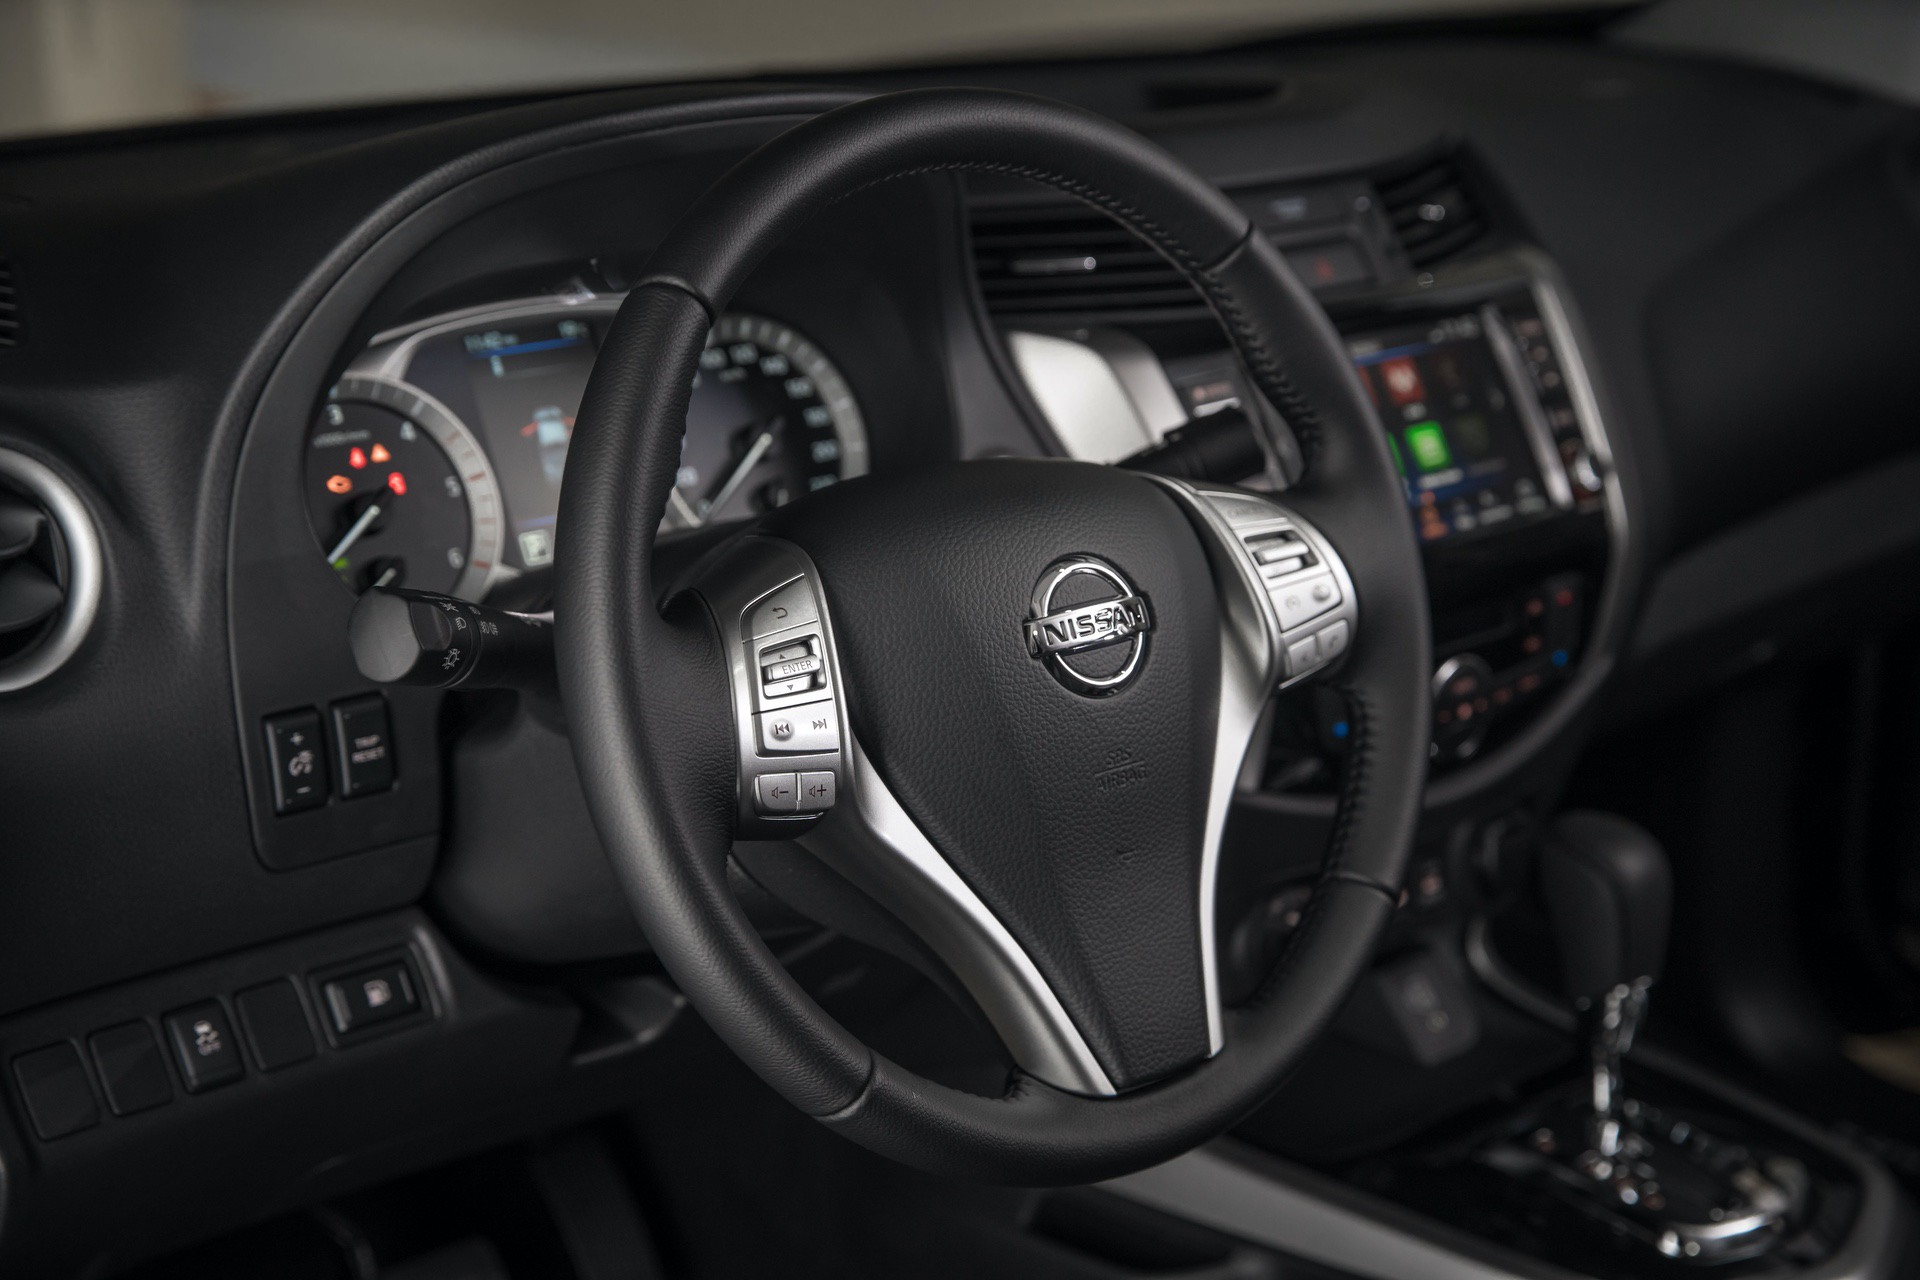 Nissan-Navara-Double-Cab-Interior-Steering-wheel